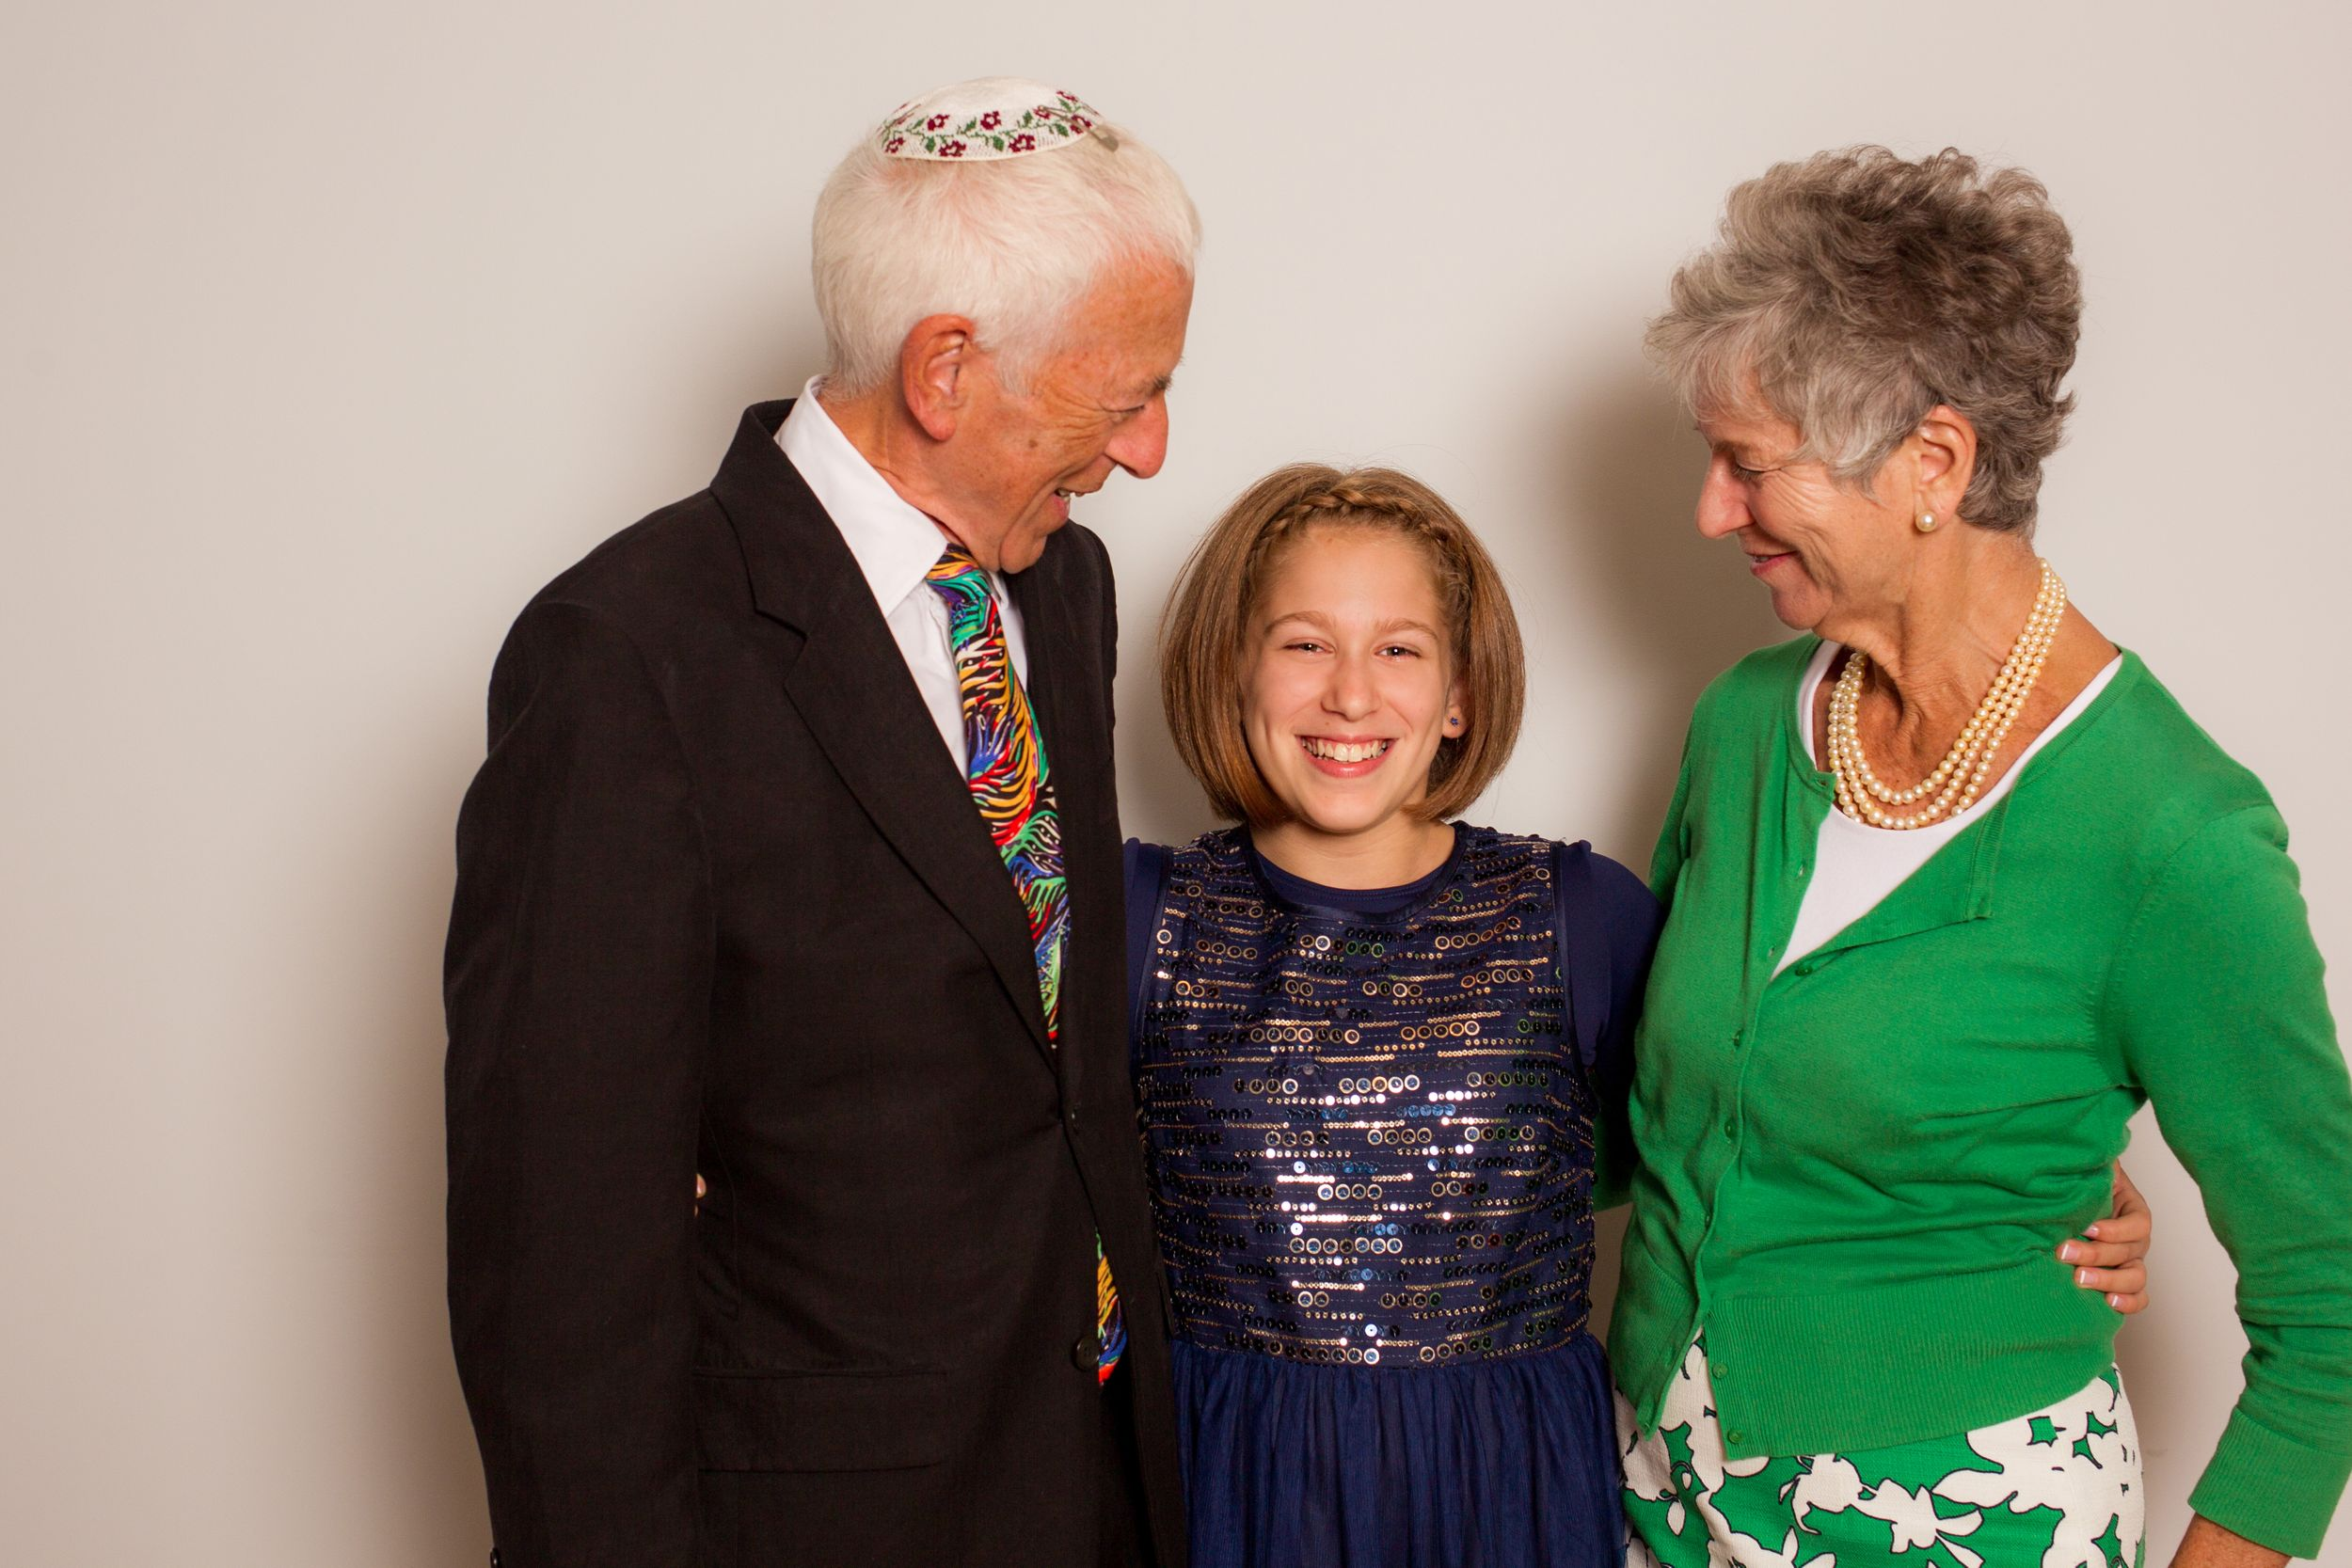 Grandparents pose with their granddaughter at her Bat Mitzvah - Bat Mitzvah Photography